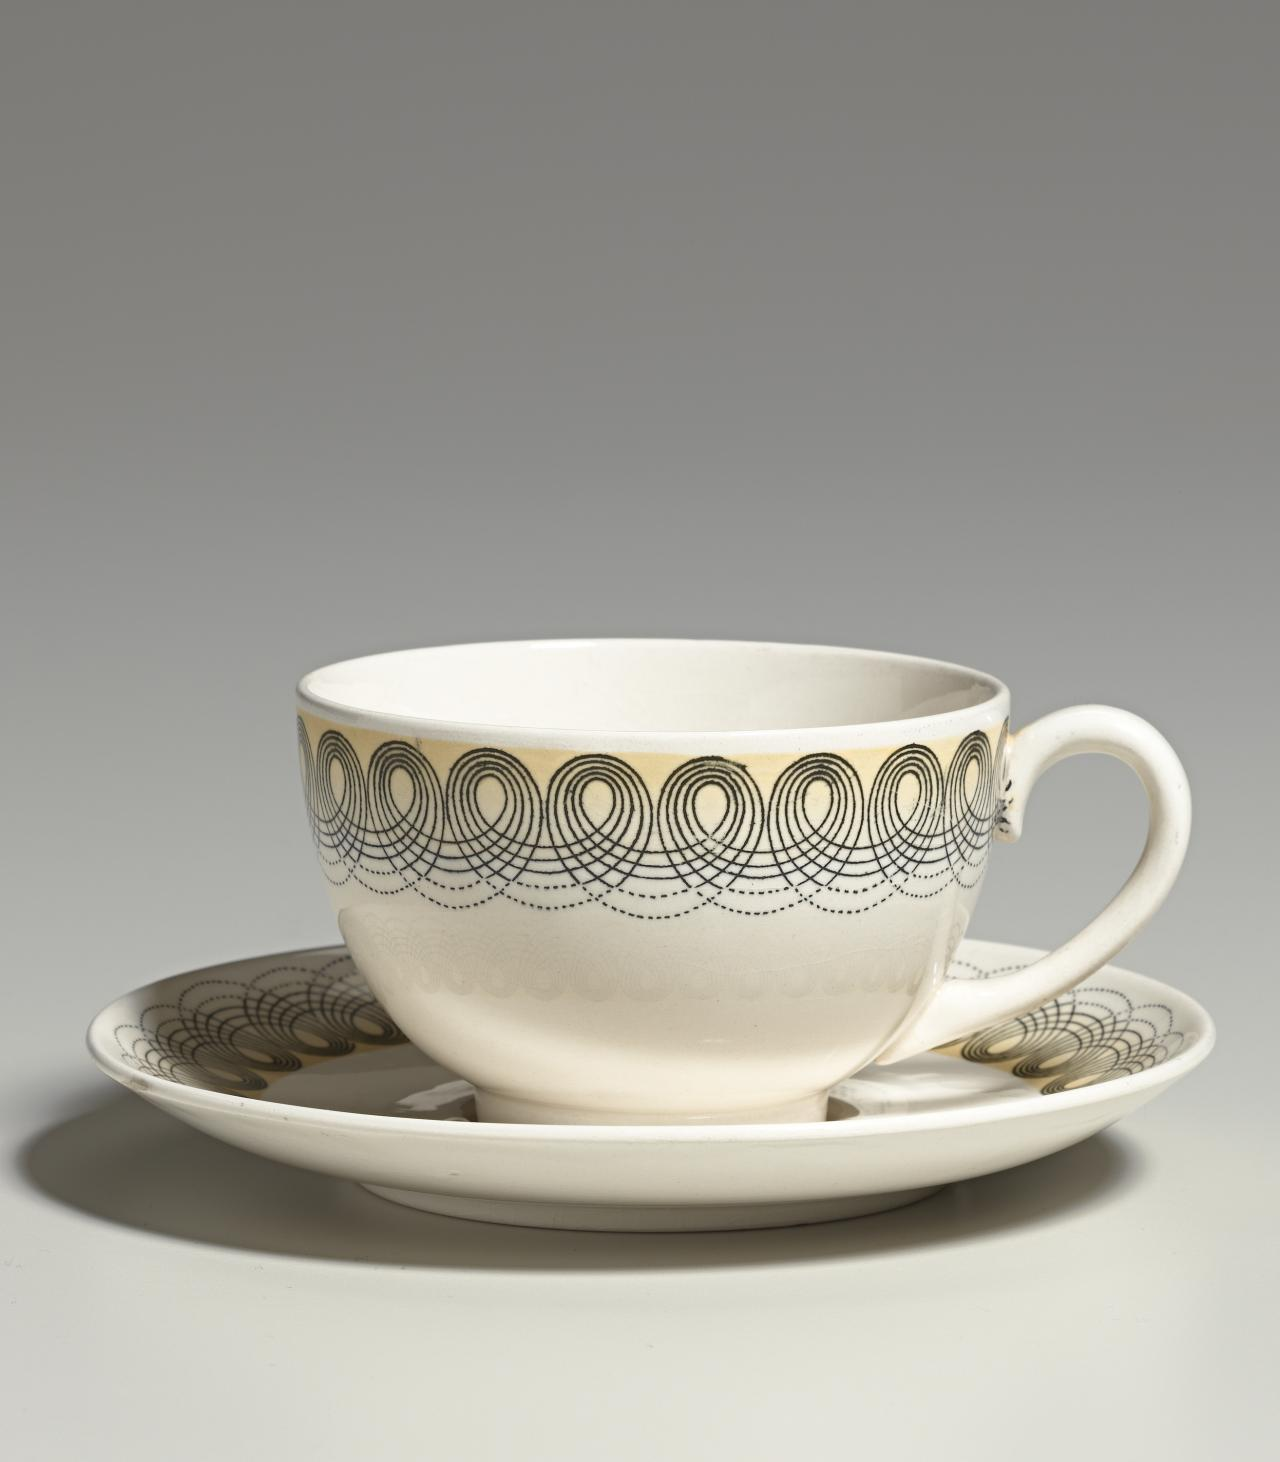 Persephone pattern, cup and saucer